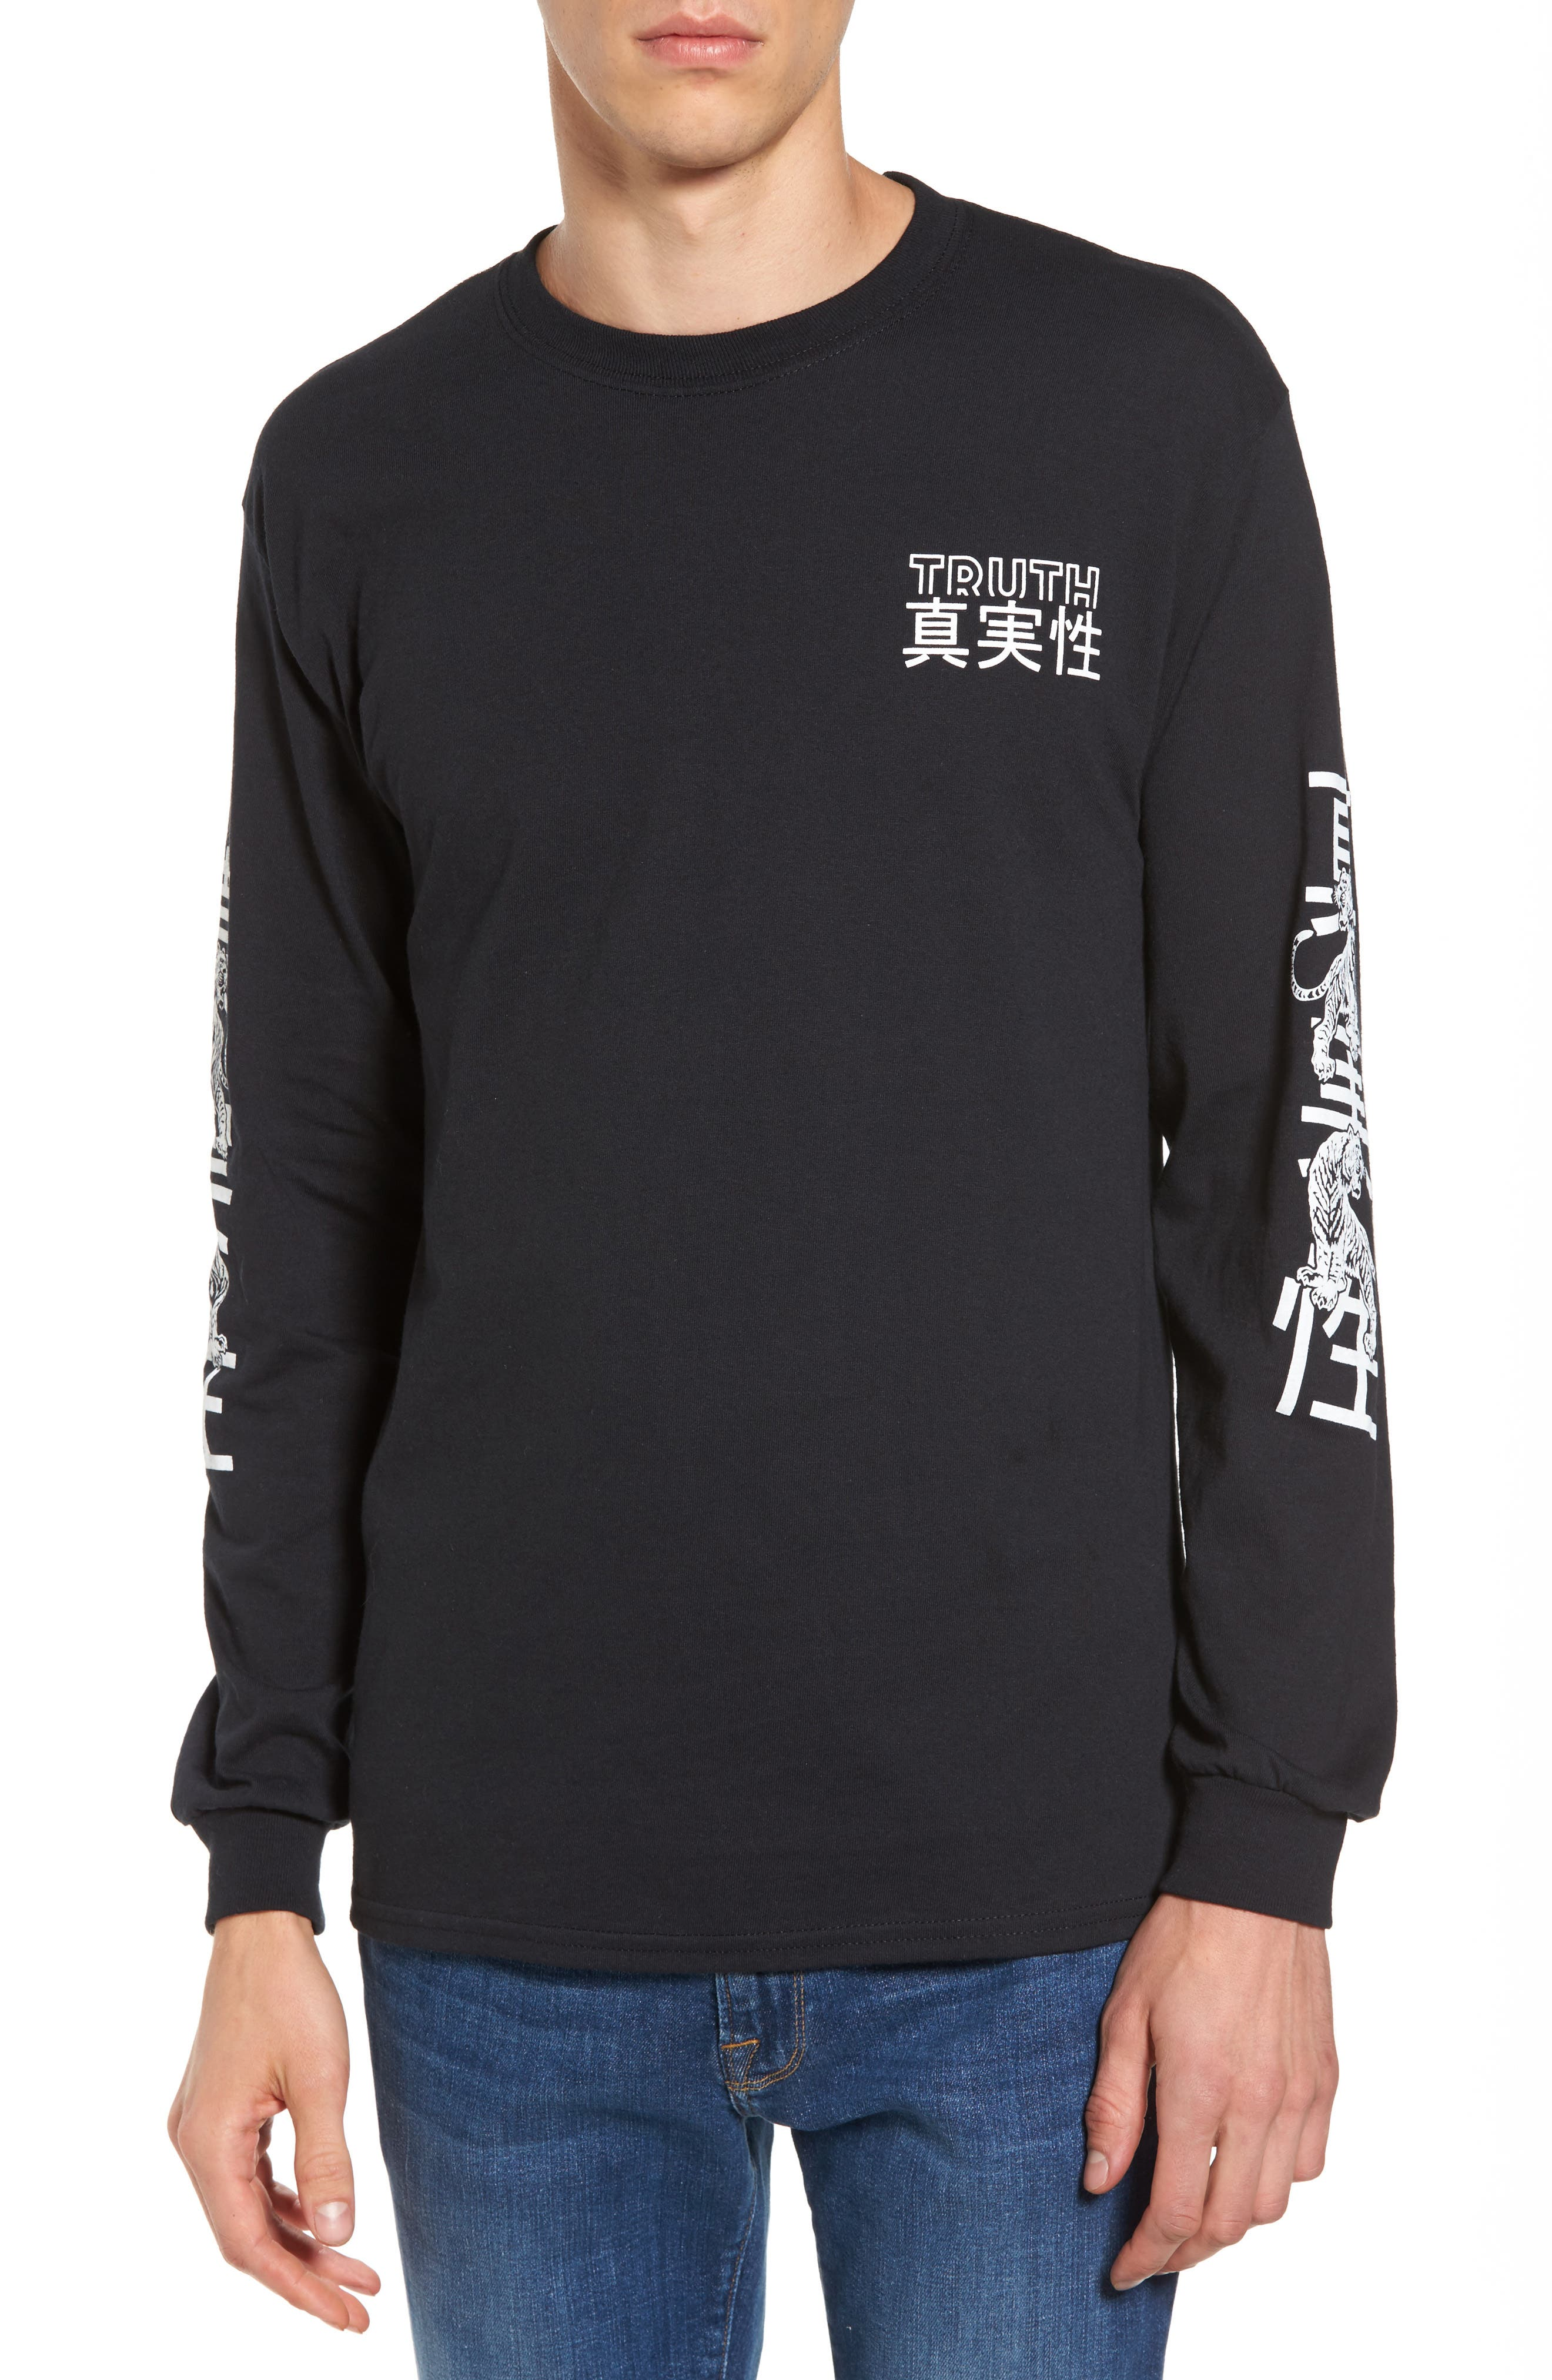 The Rail Truth Tiger Graphic Long Sleeve T-Shirt